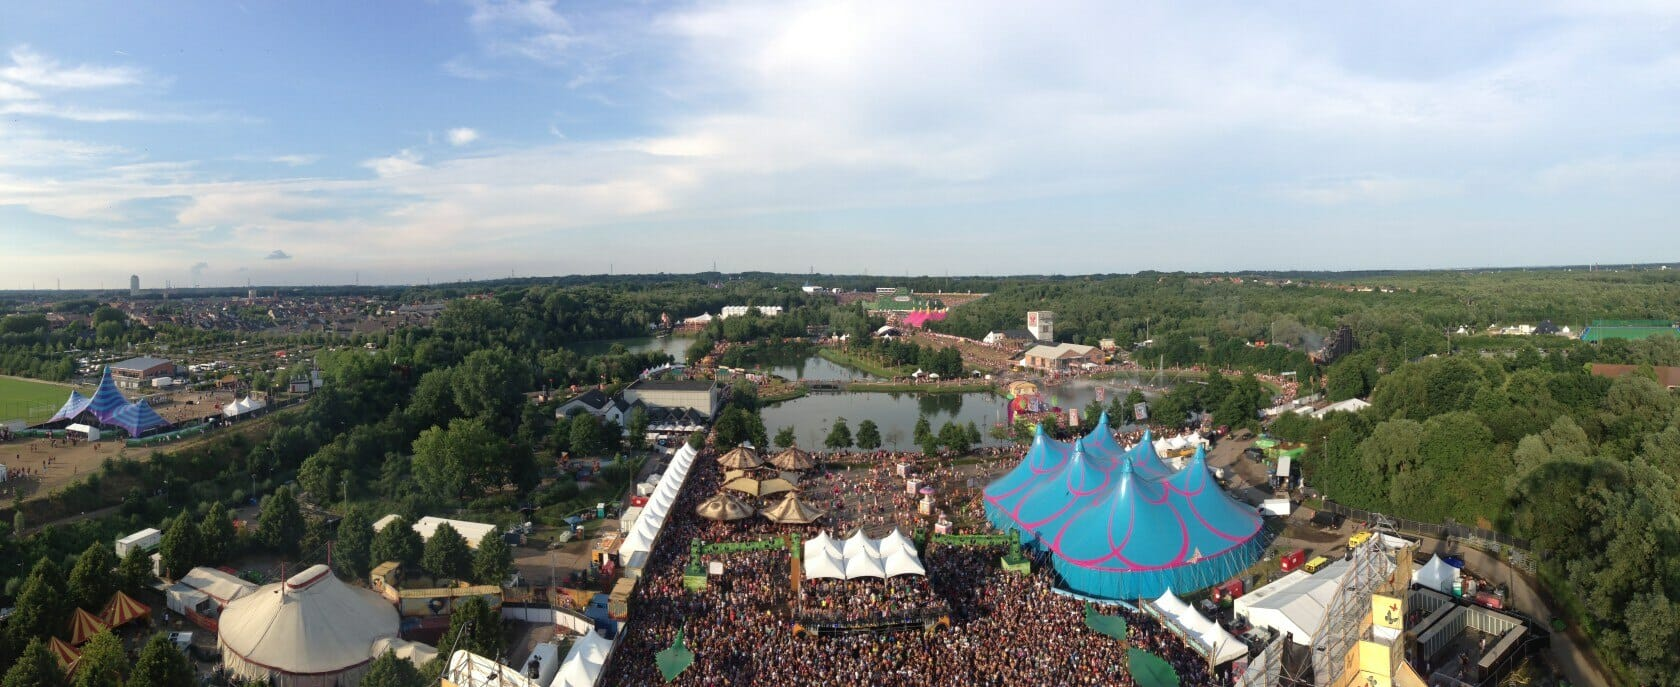 tomorrowland venue ferris wheel